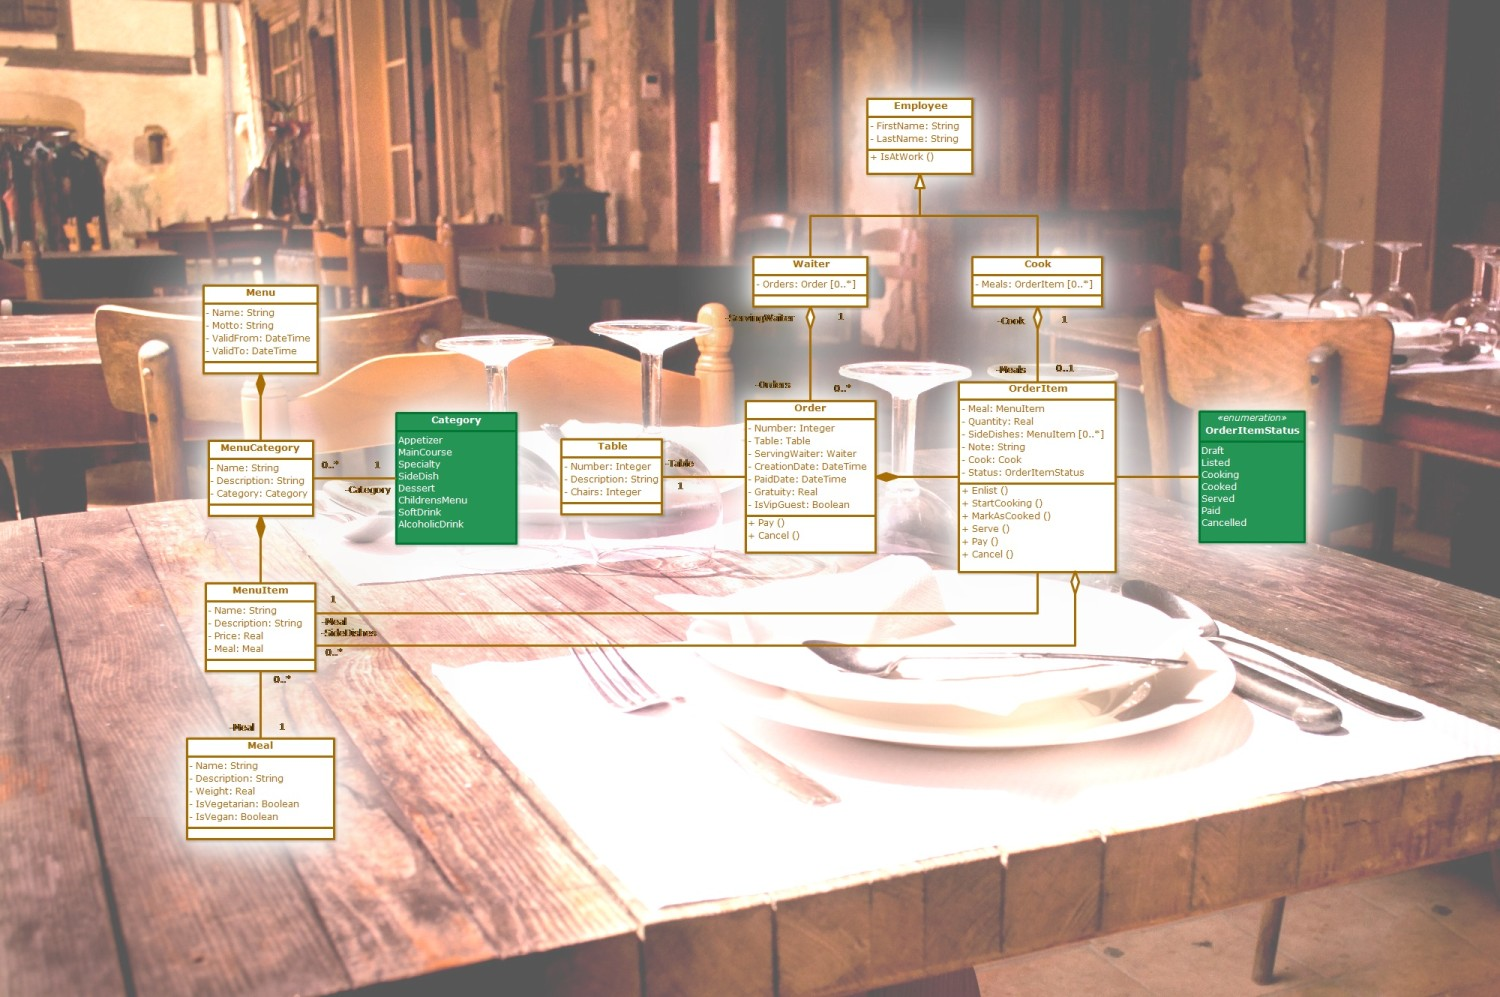 Restaurant Orders (UML Class Diagram)